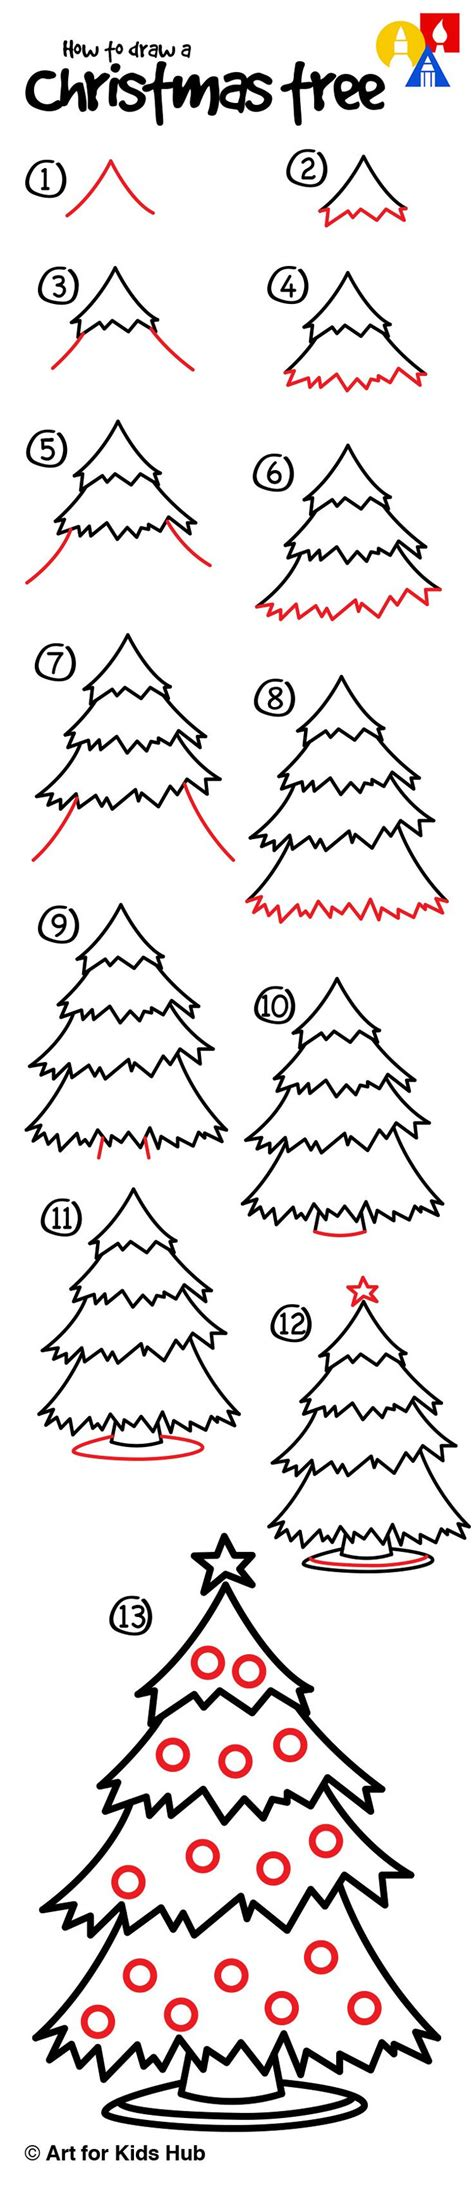 25 best ideas about christmas drawing on pinterest